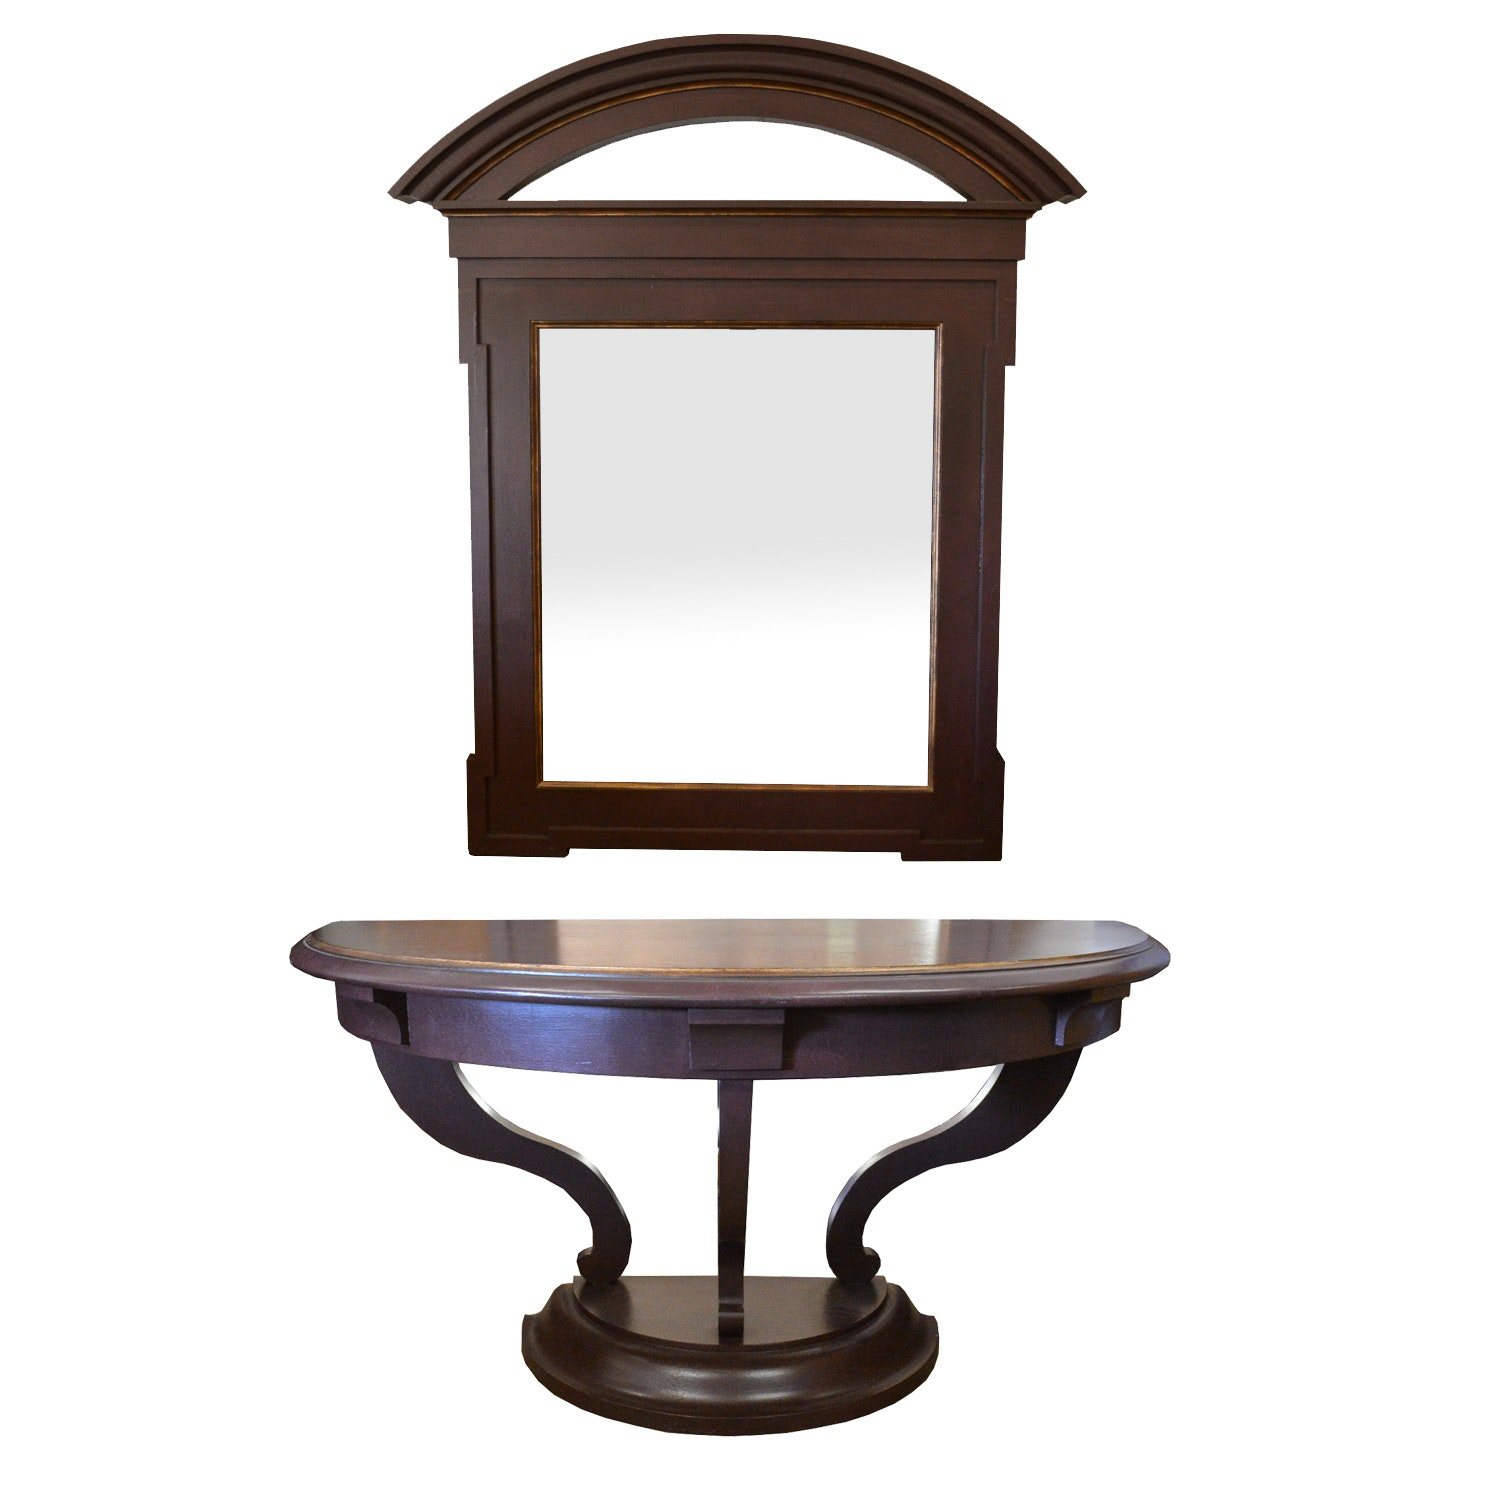 Art Deco Style Foyer Table and Wall Mirror